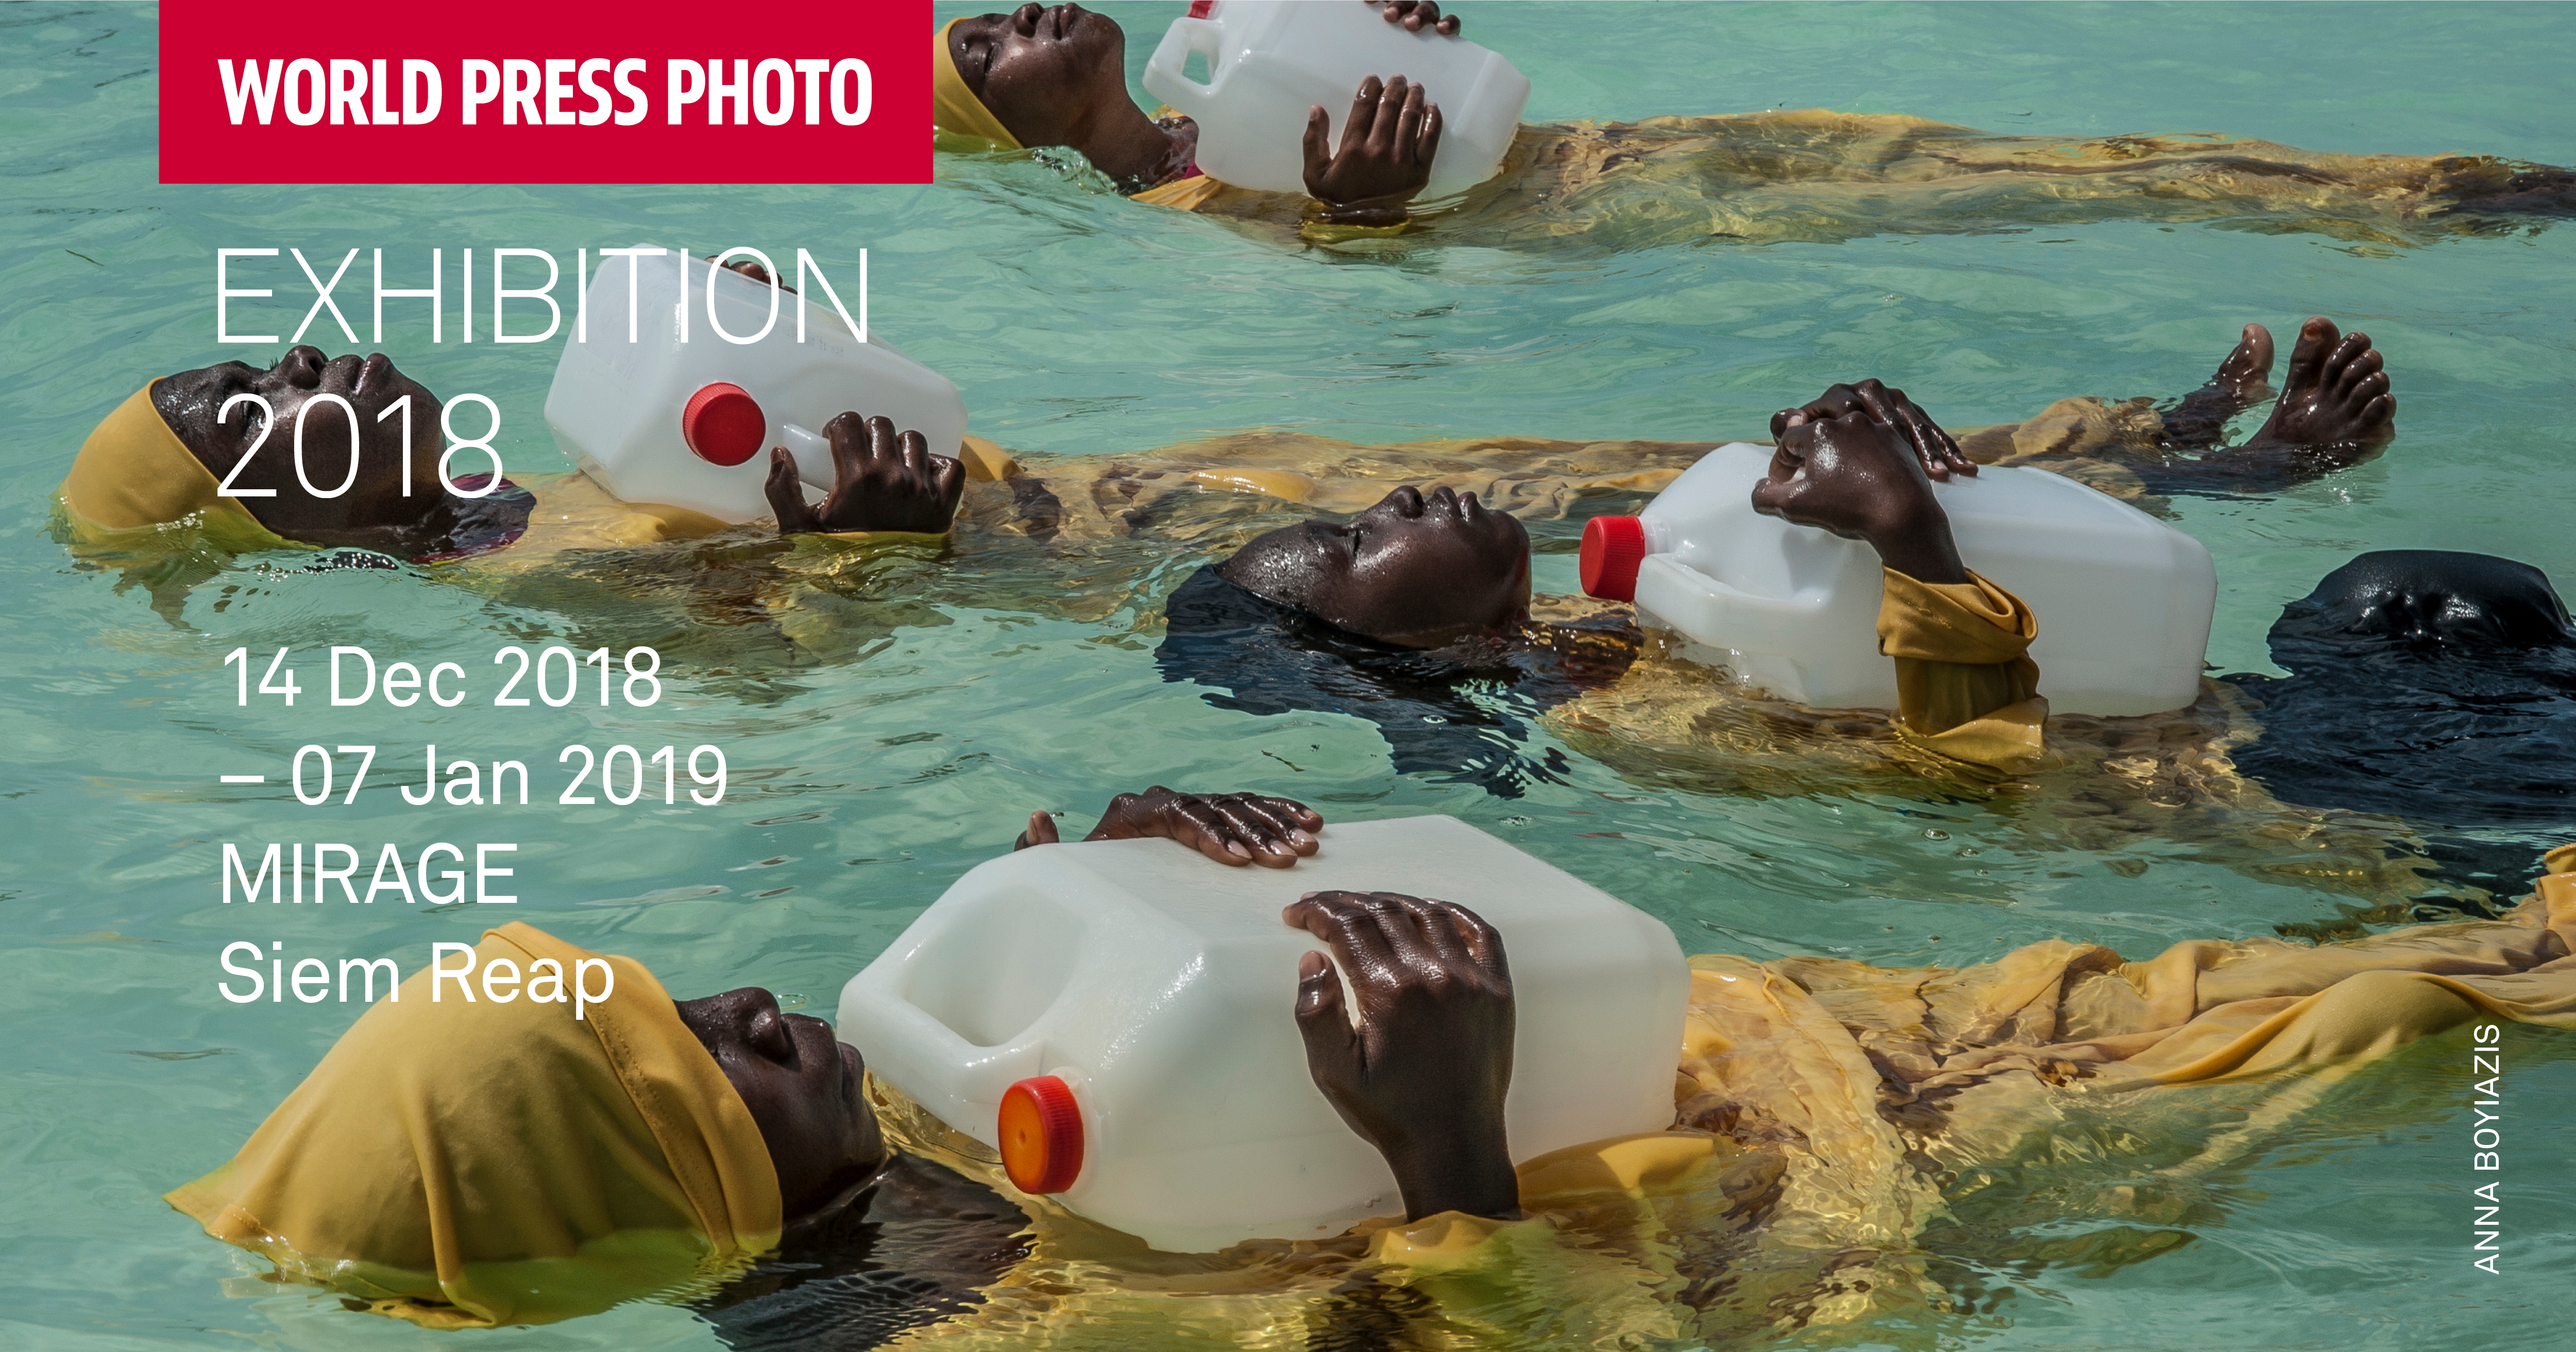 WORLD PRESS Photo Exhibition 2018 at MIRAGE Contemporary Art Space in Siem Reap, Cambodia